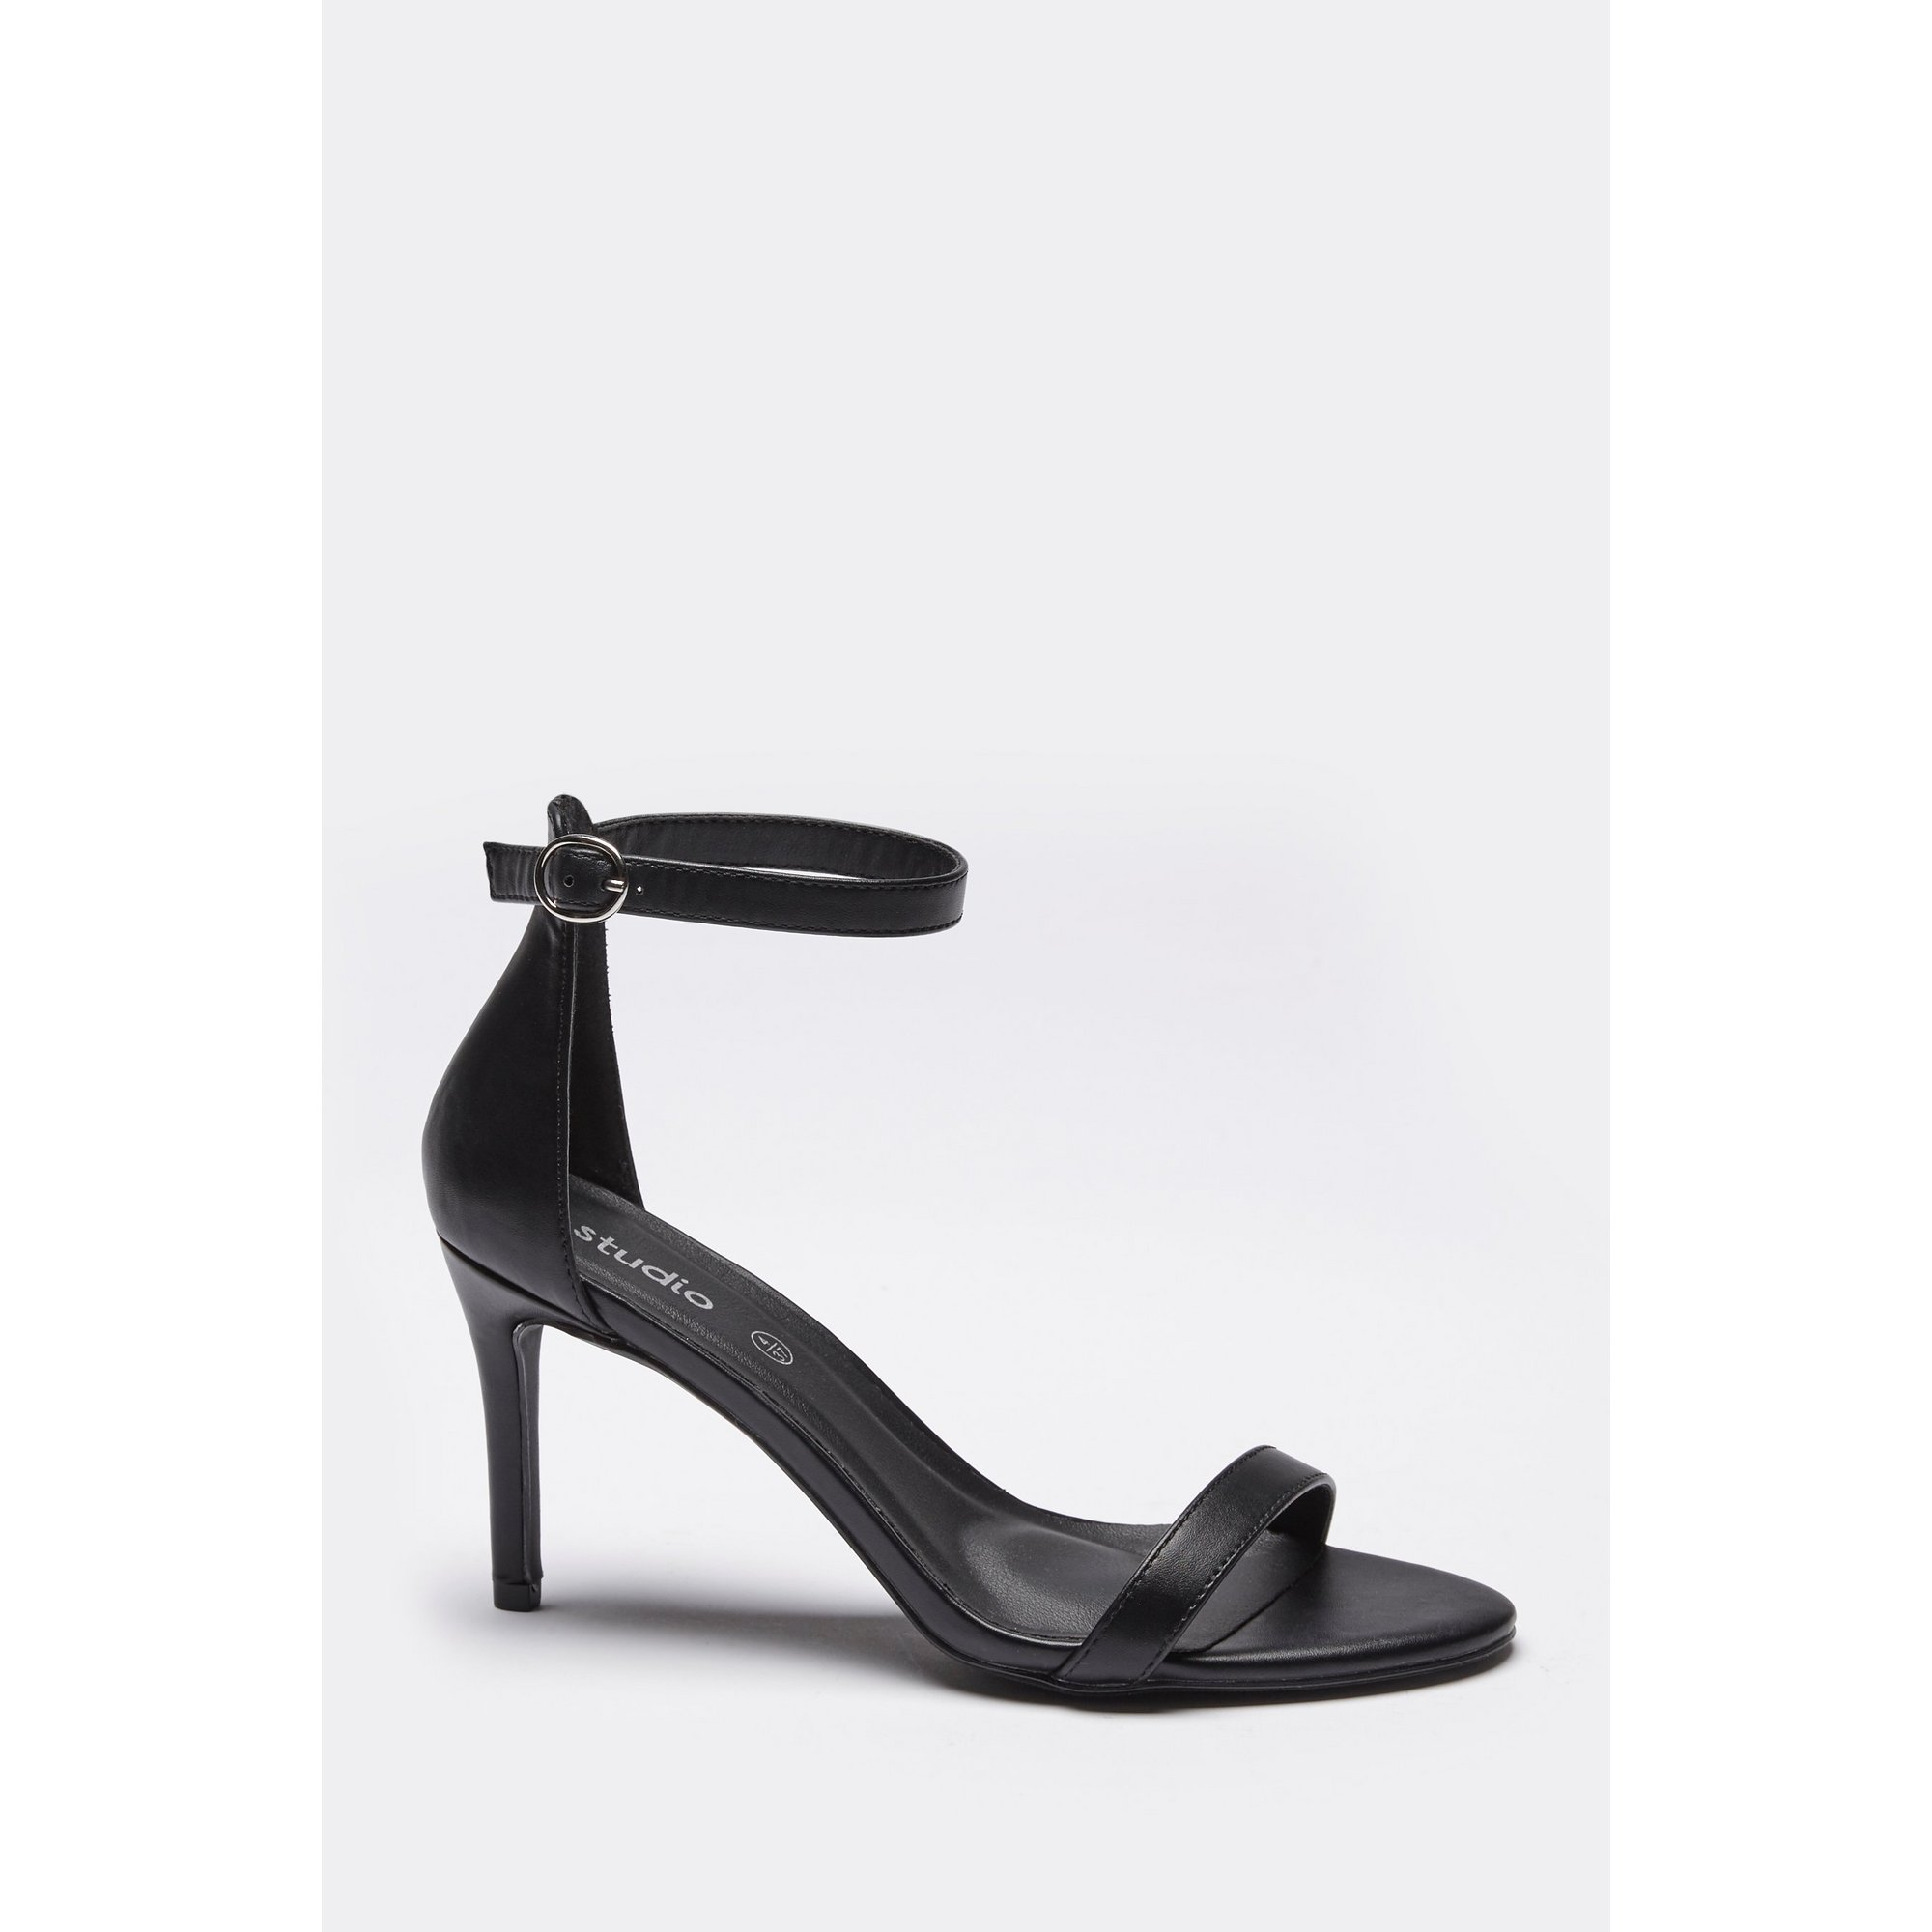 Image of Barely There High Heel Shoes